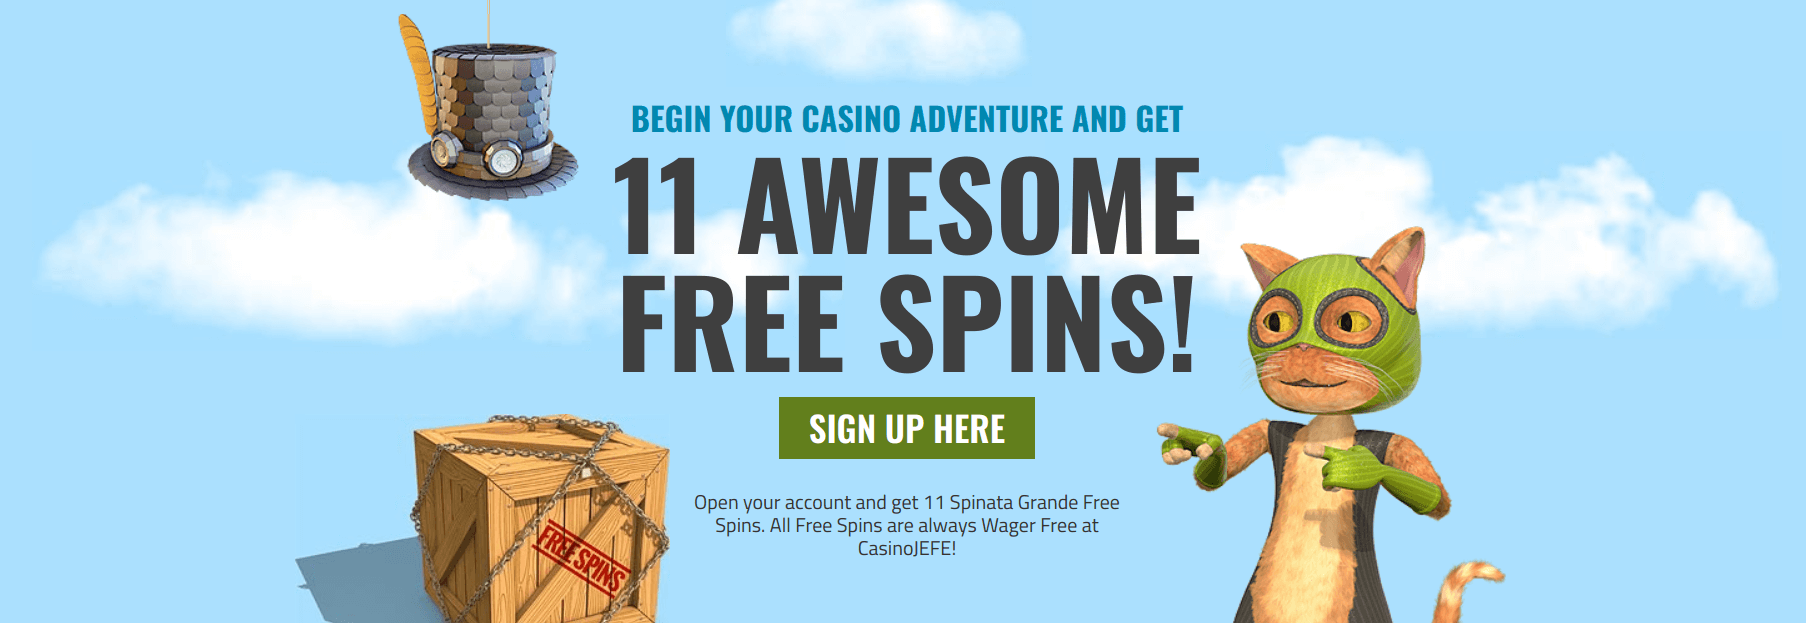 CasinoJEFE Casino Review no deposit free spins wager free free spins